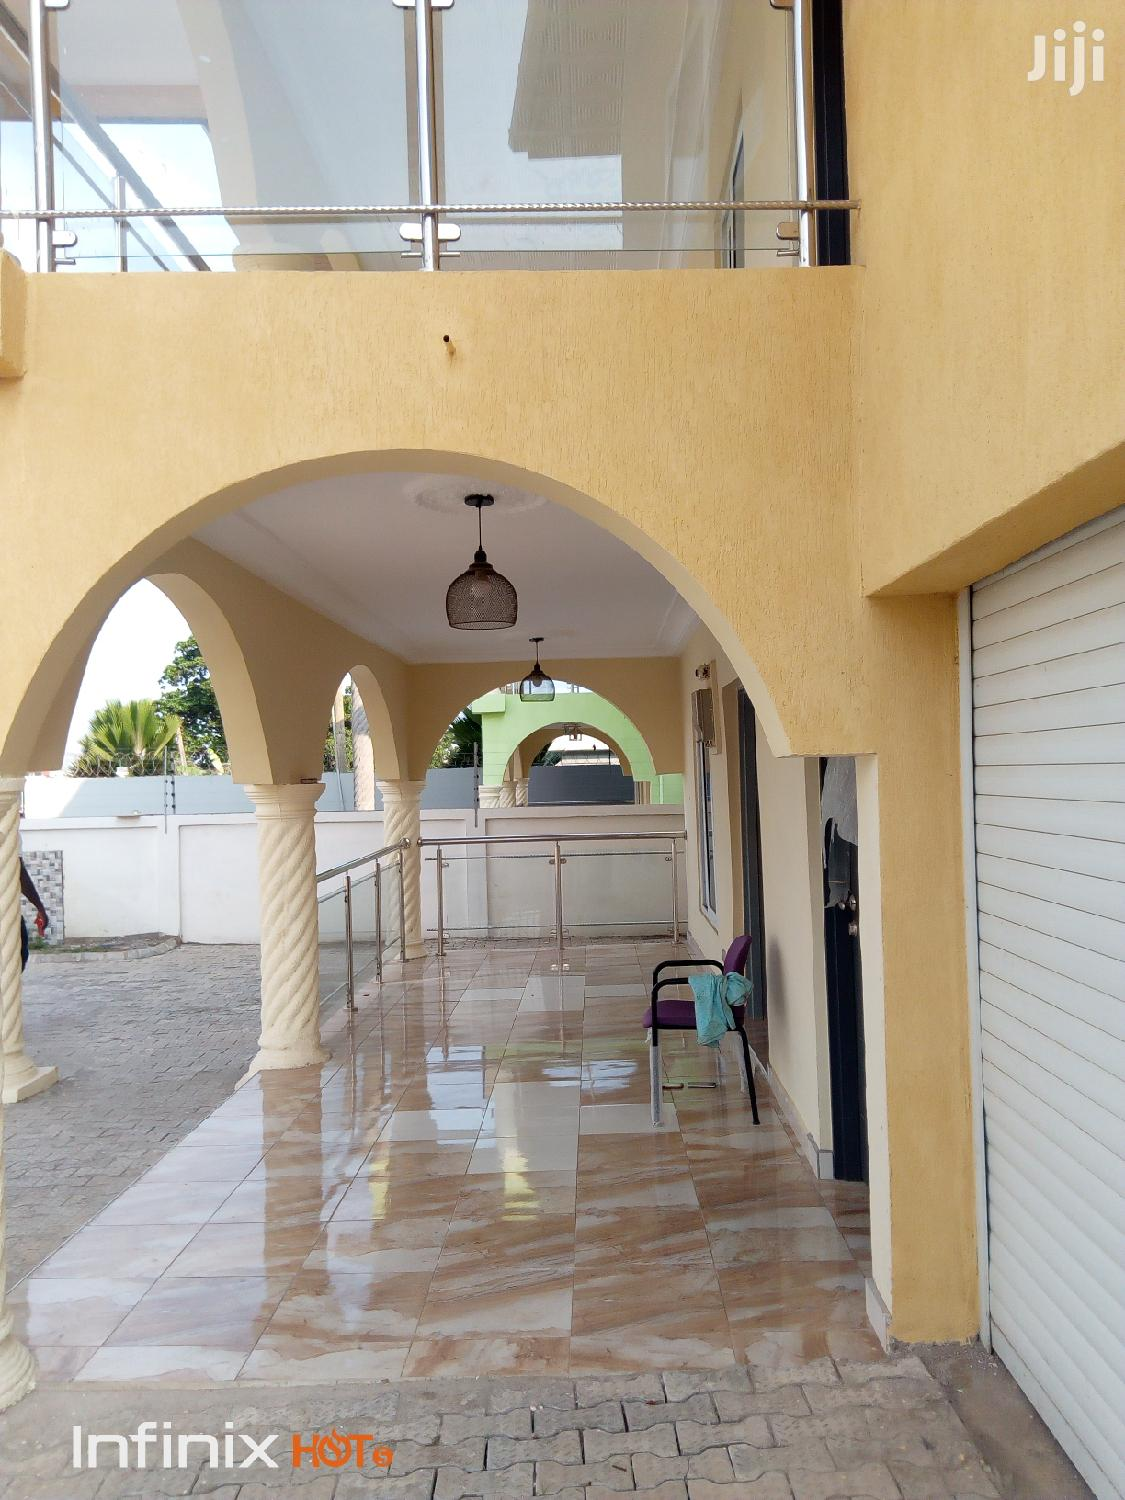 4 Bedroom Furnished For Sale /Rent At ABC | Houses & Apartments For Rent for sale in Achimota, Greater Accra, Ghana